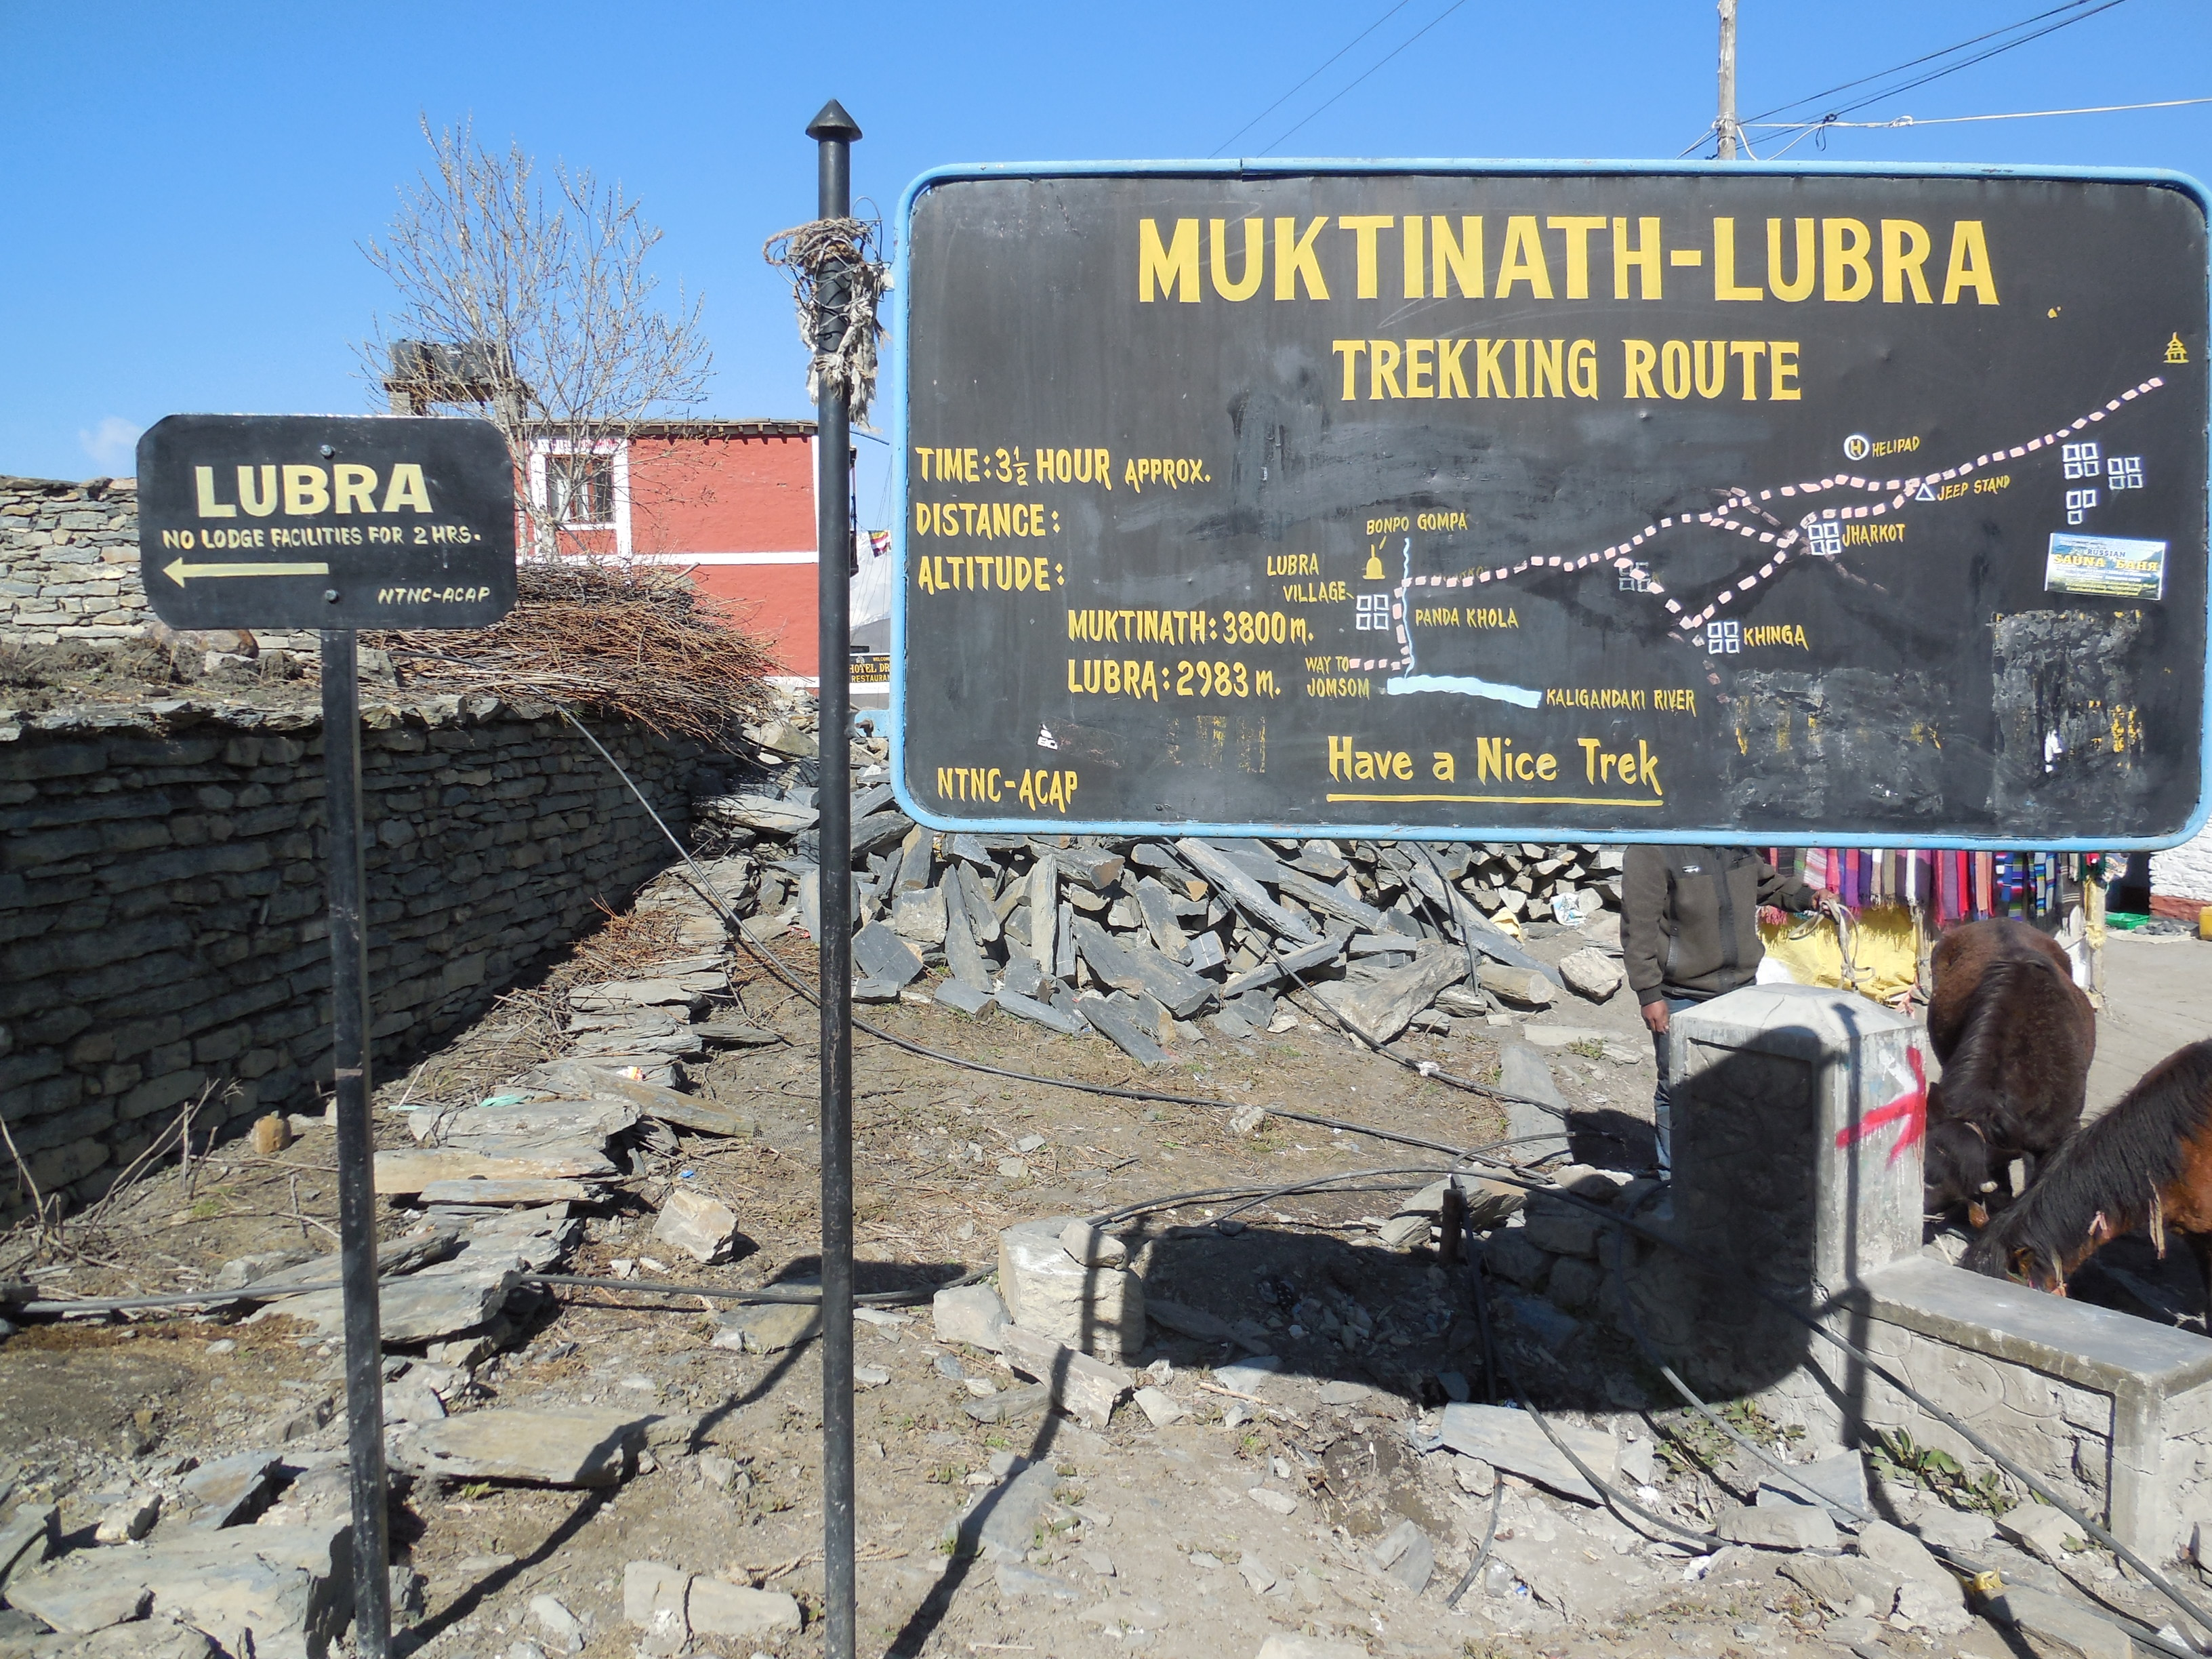 From Muktinath via Lupra to Jomson